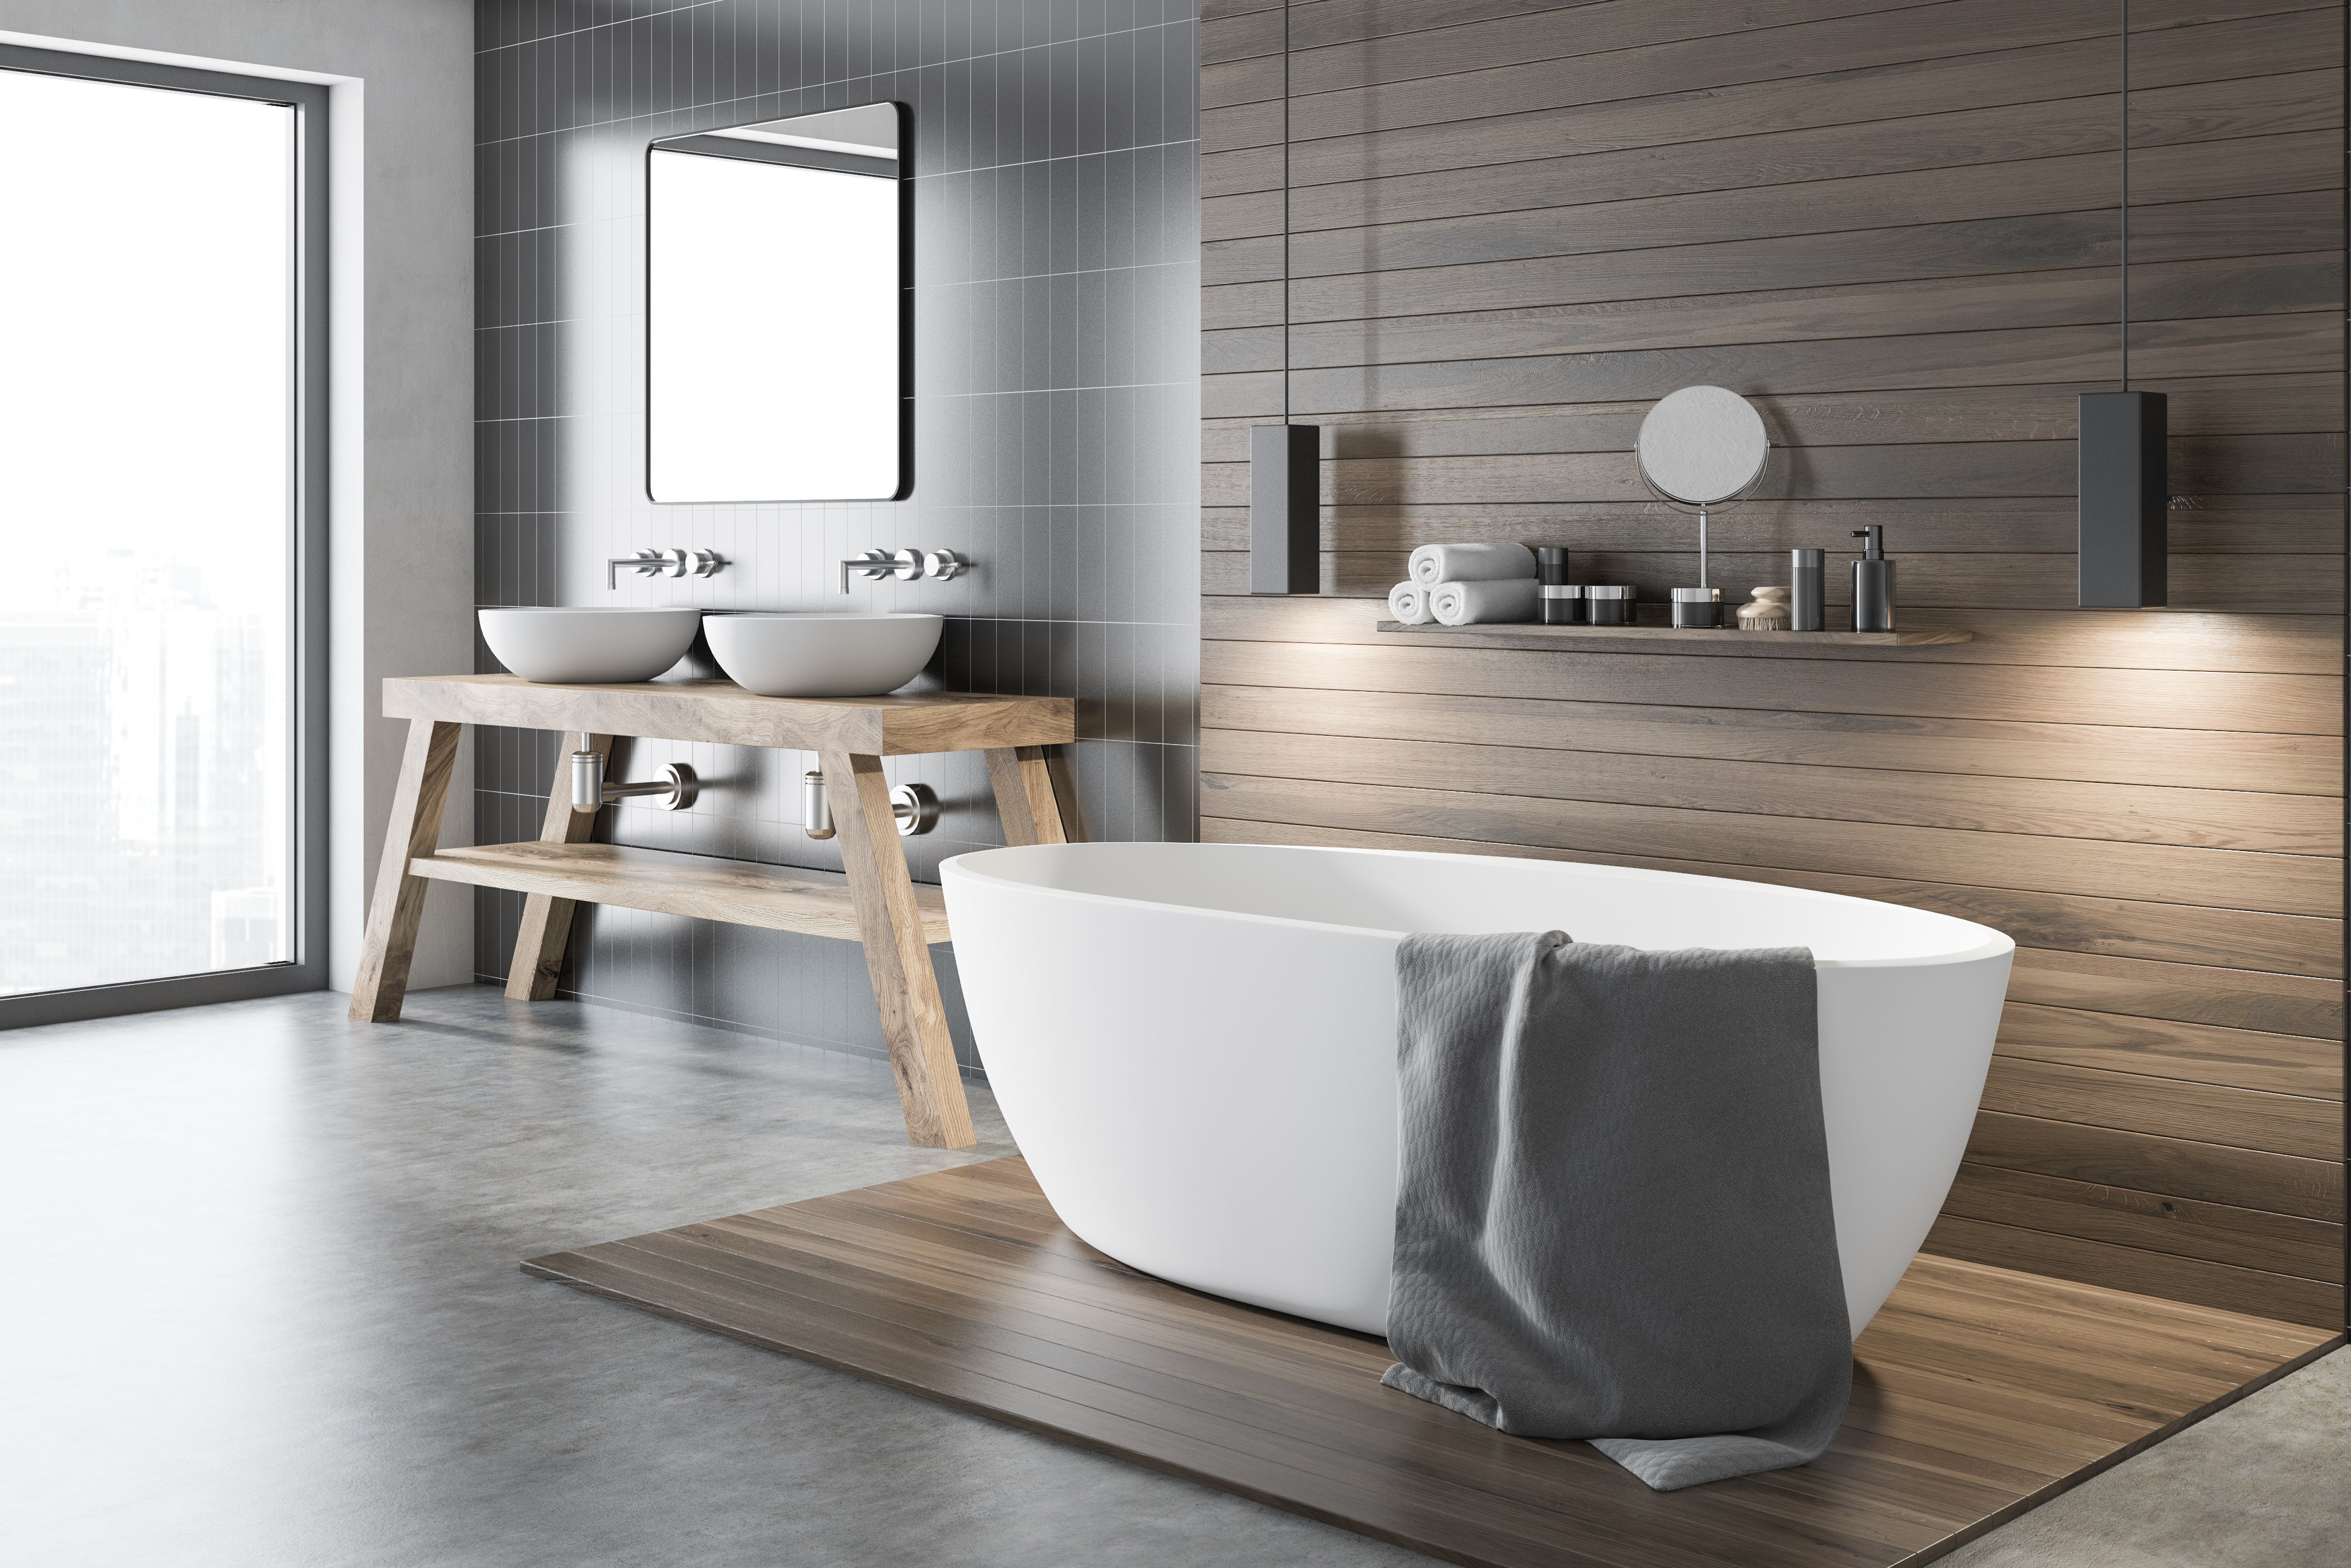 stand alone tub in a luxury bathroom